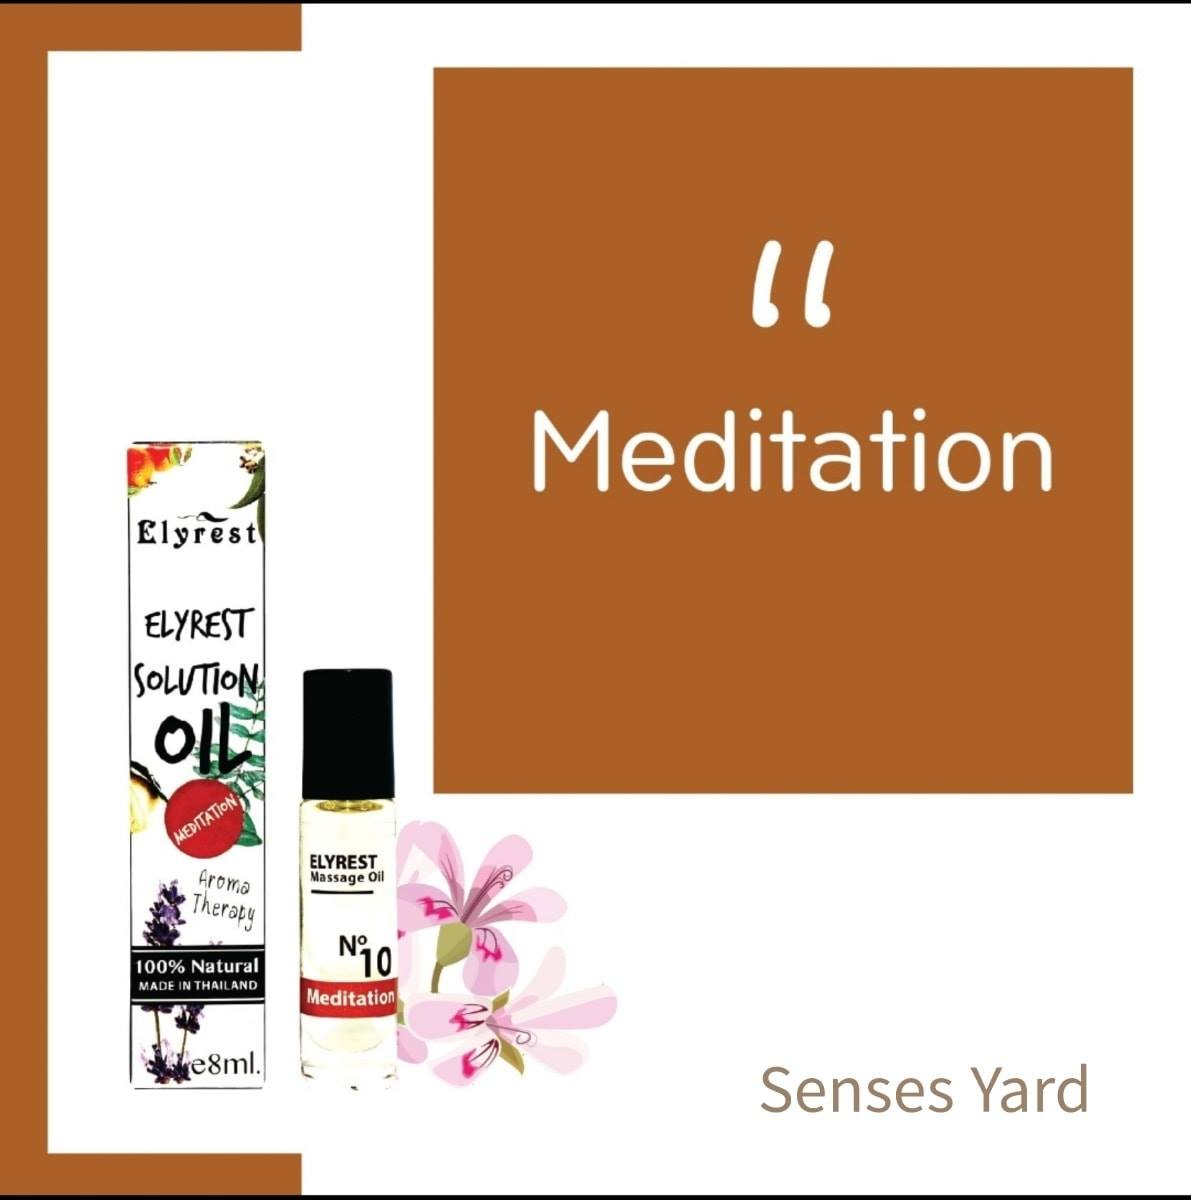 Elyrest Solution Oil Roll-On No.10 Meditation / 靜坐冥想香薰精油 SENSESYARD